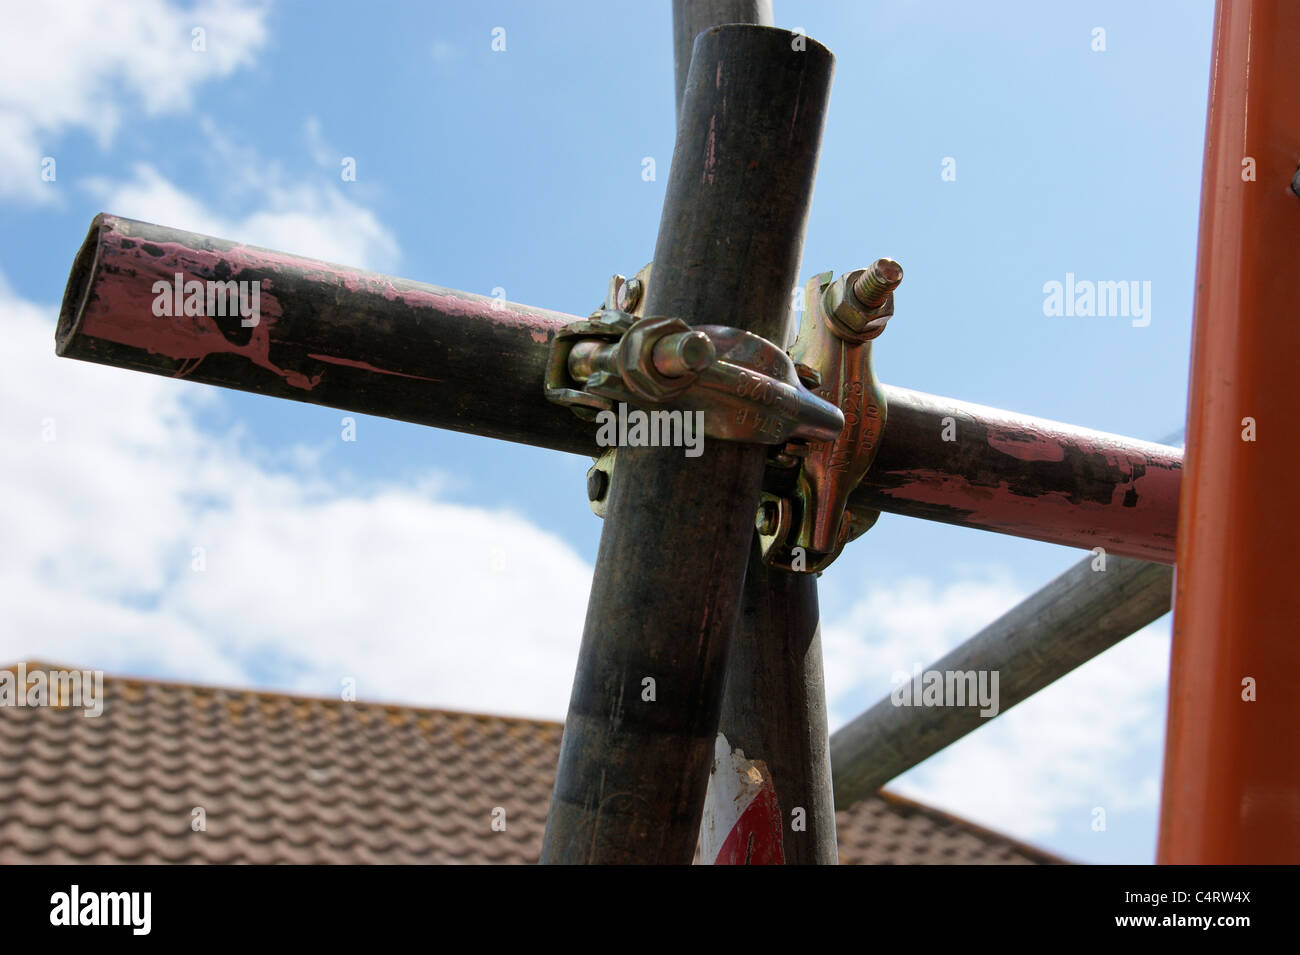 scaffolding round a property showing secured fittings - Stock Image